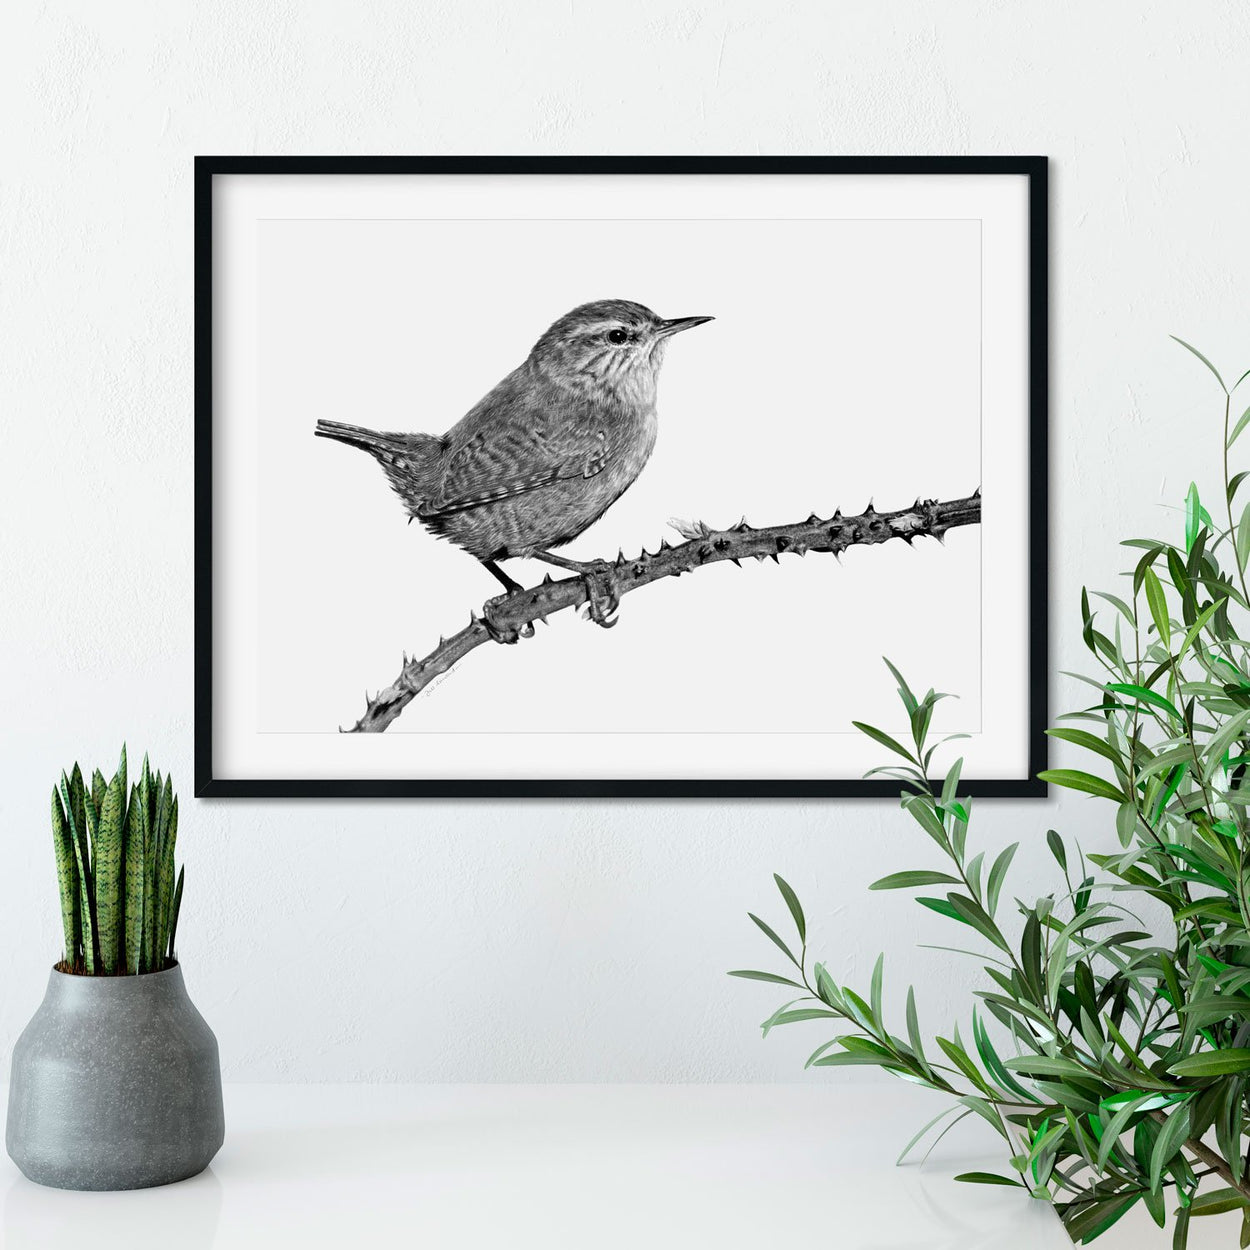 Wren Bird Drawing on Wall - The Thriving Wild